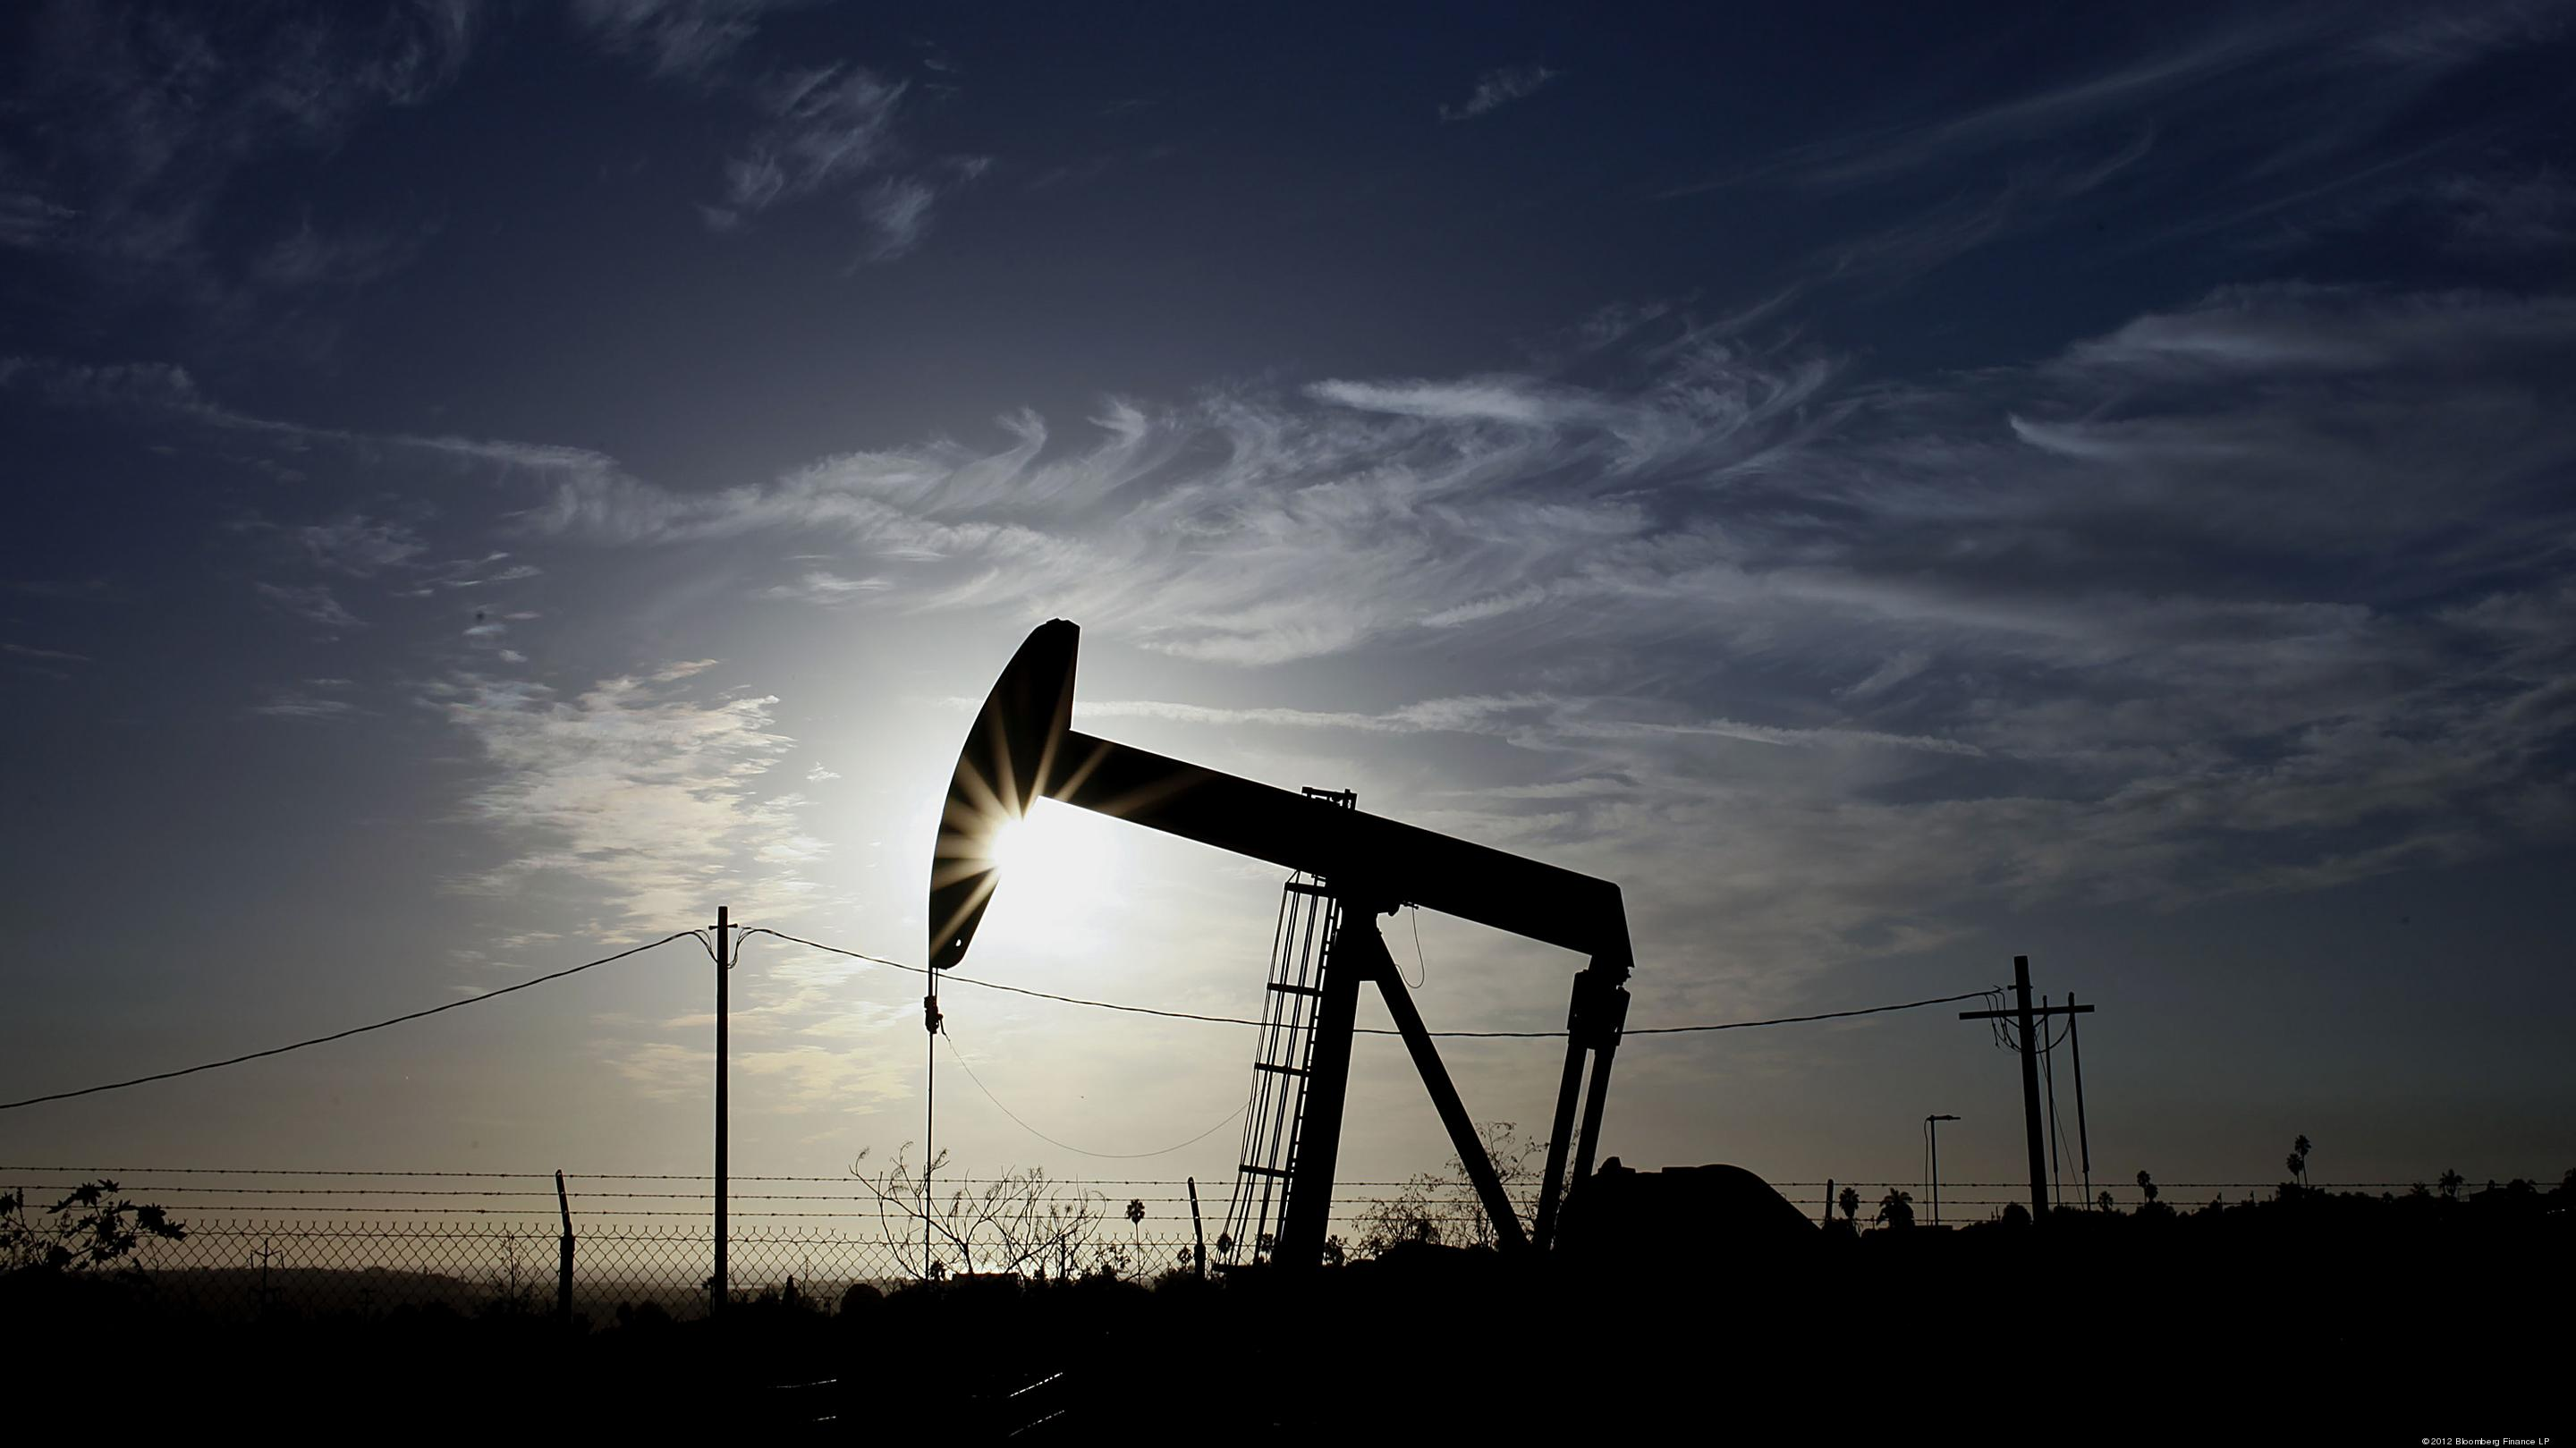 How many years will it take for the oil and gas industry to bounce back?